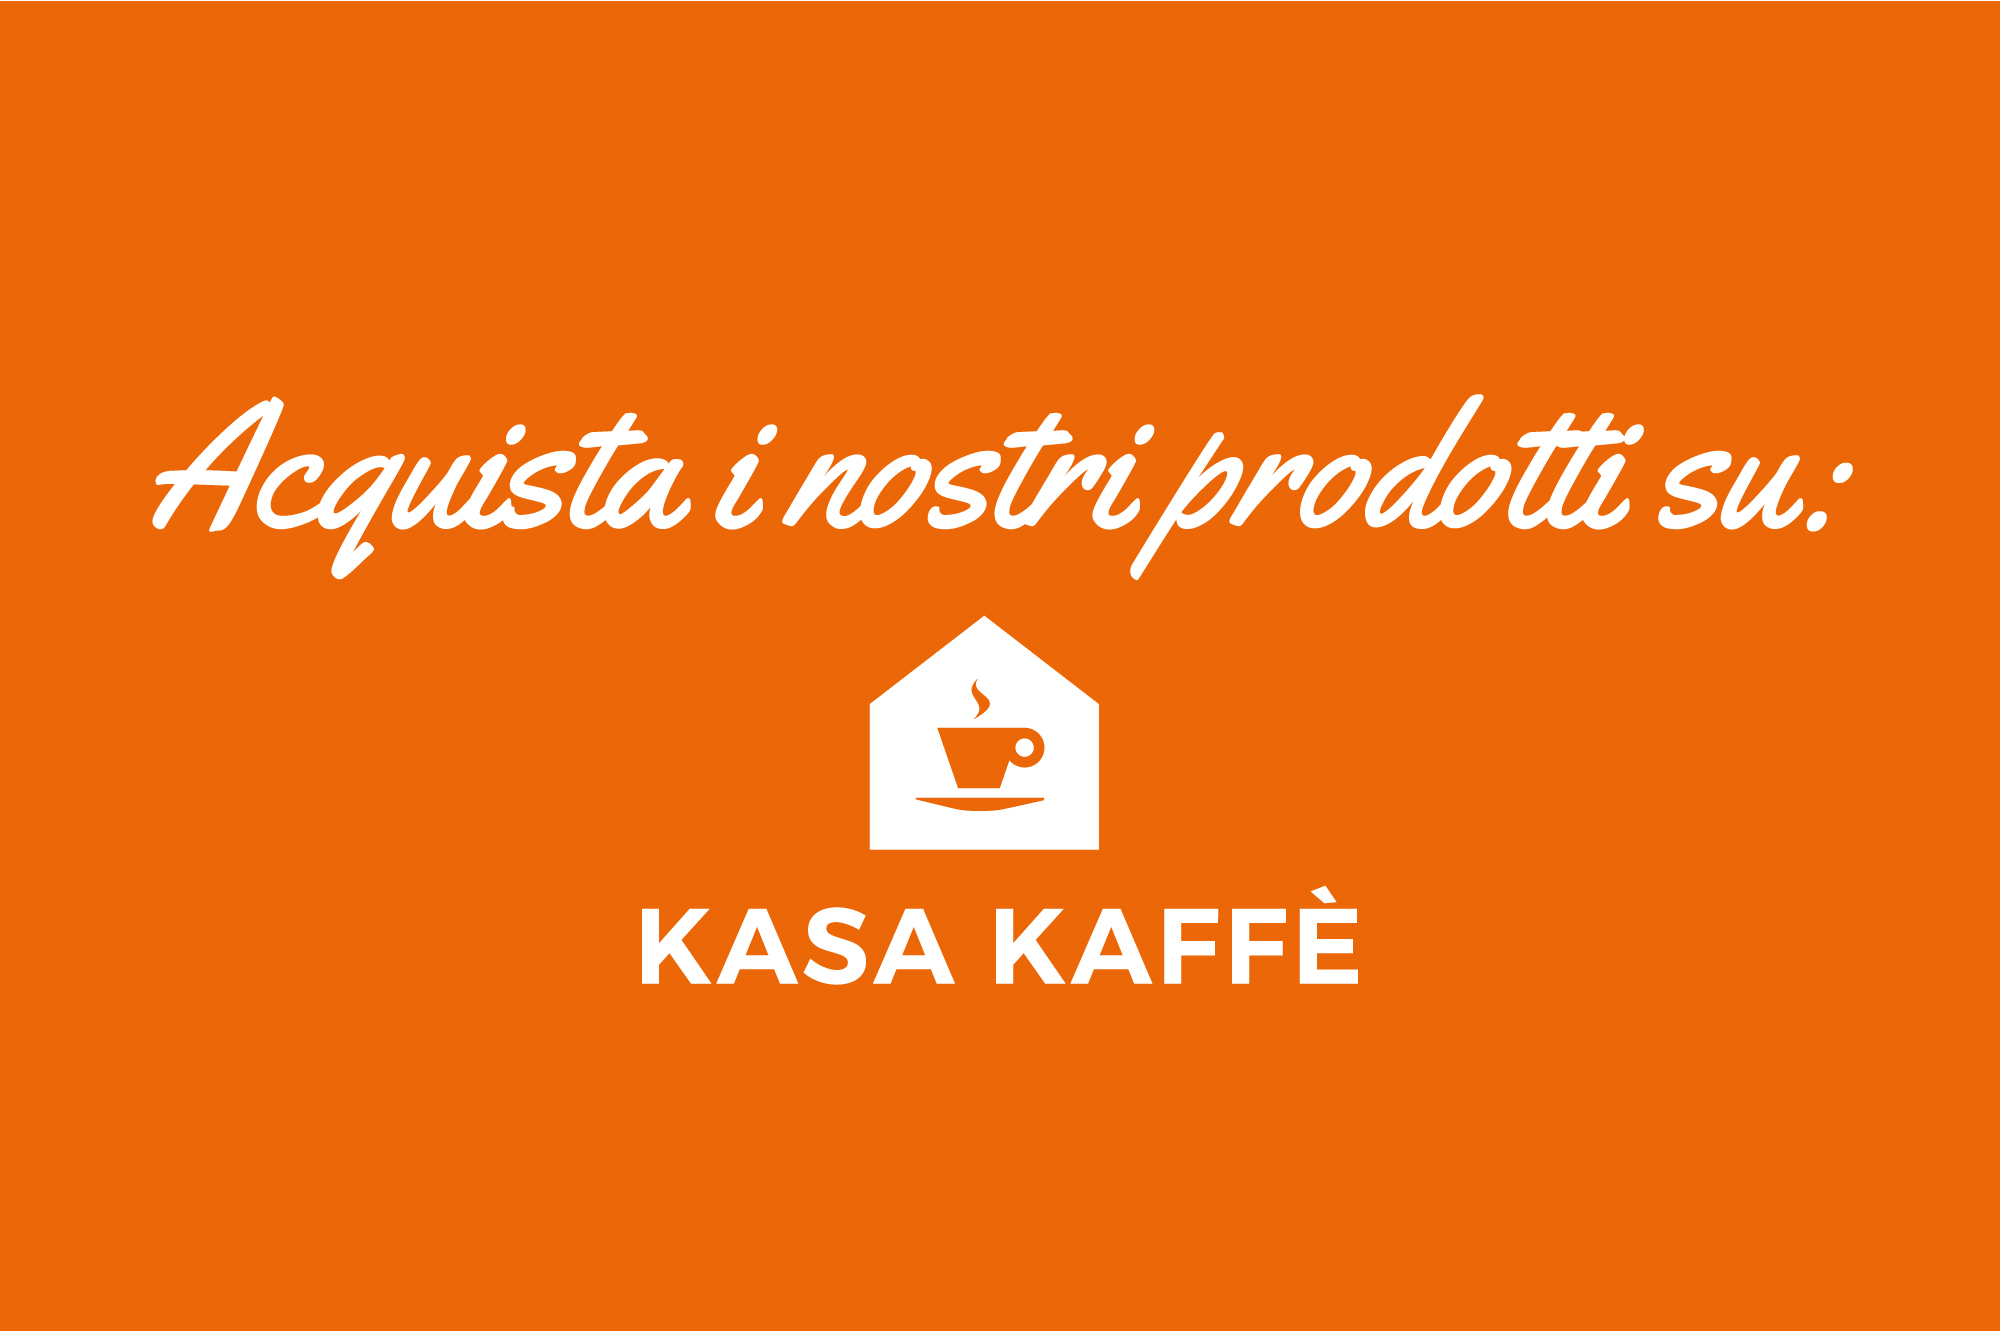 Acquista su kasakaffe.it